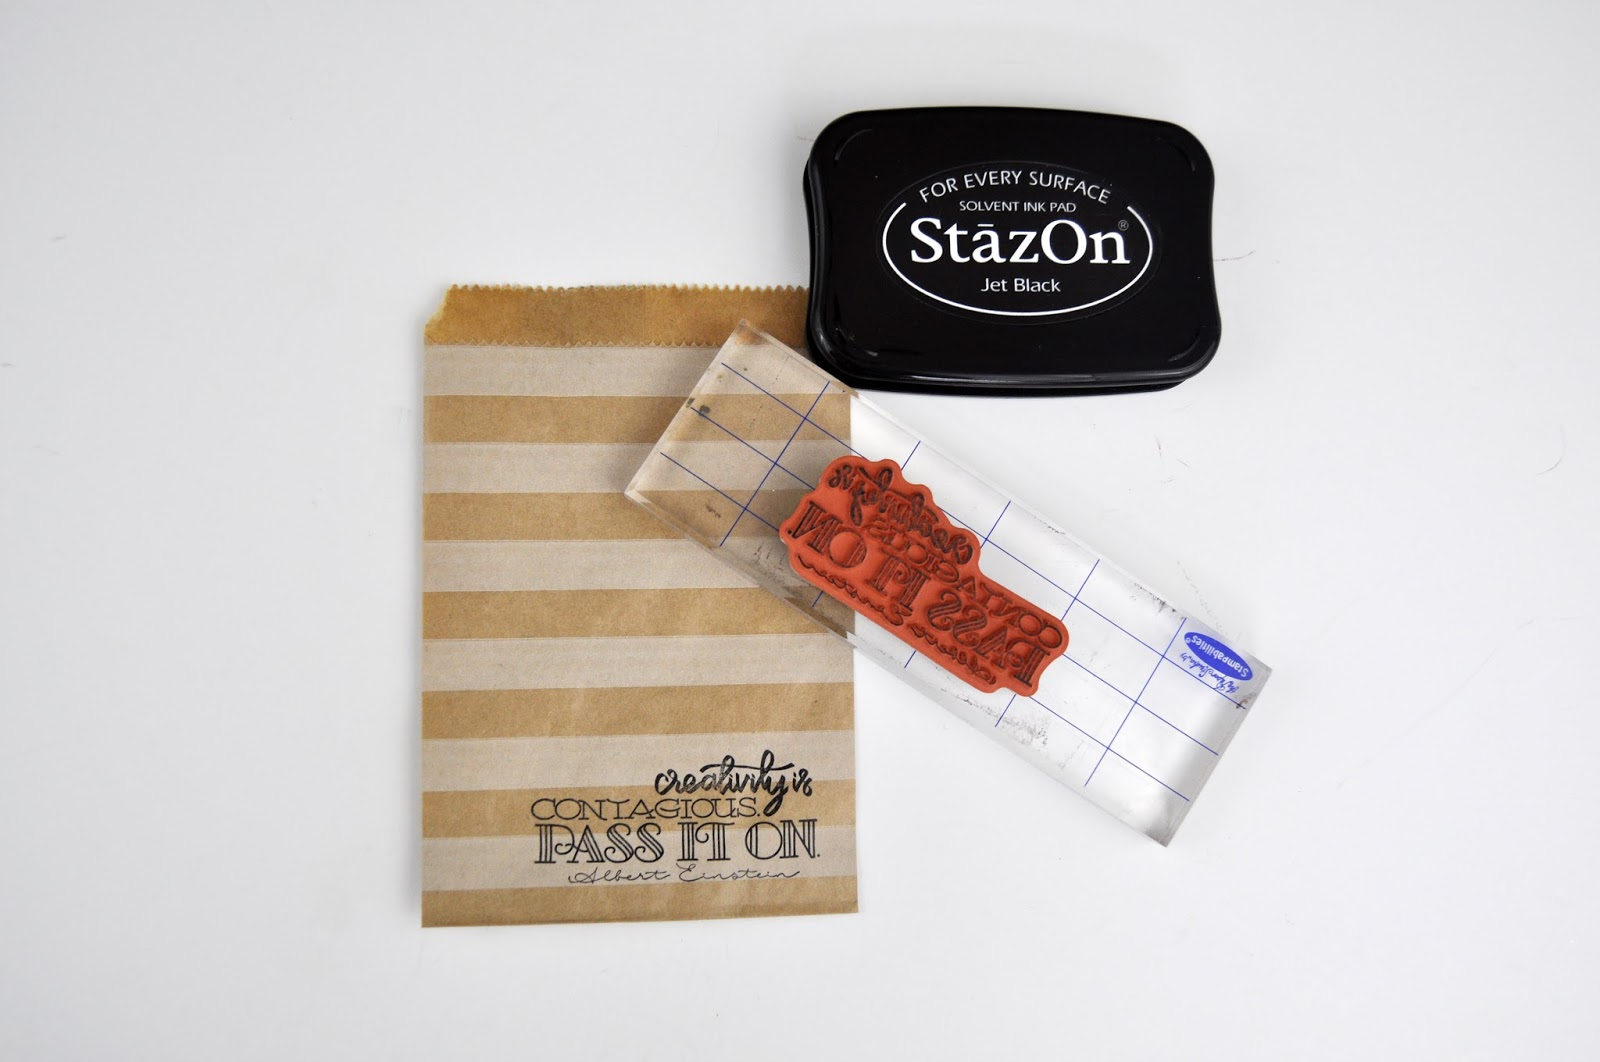 Spellbinders Dies and Stamps: Creativity Gift Bag by Jen Gallacher for www.jengallacher.com. #diecutting #stamping